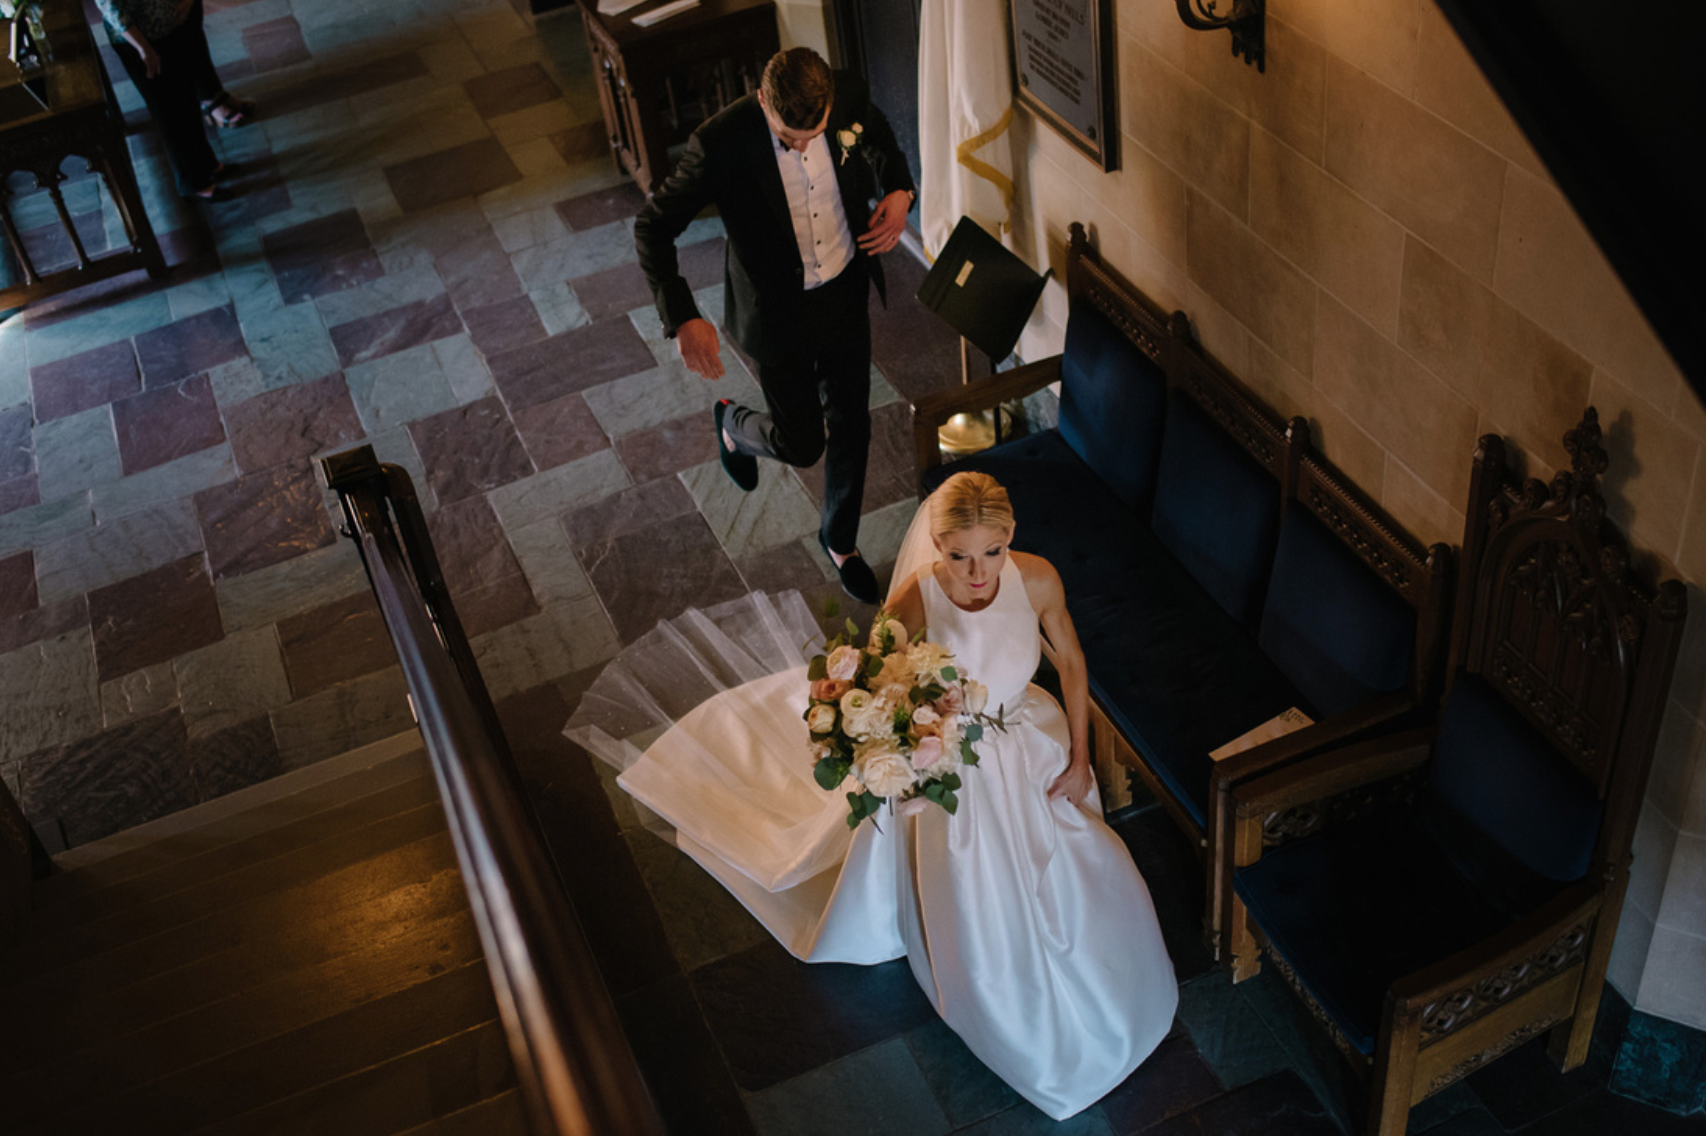 A candid moment after the ceremony. Bridal Bouquet on full display.